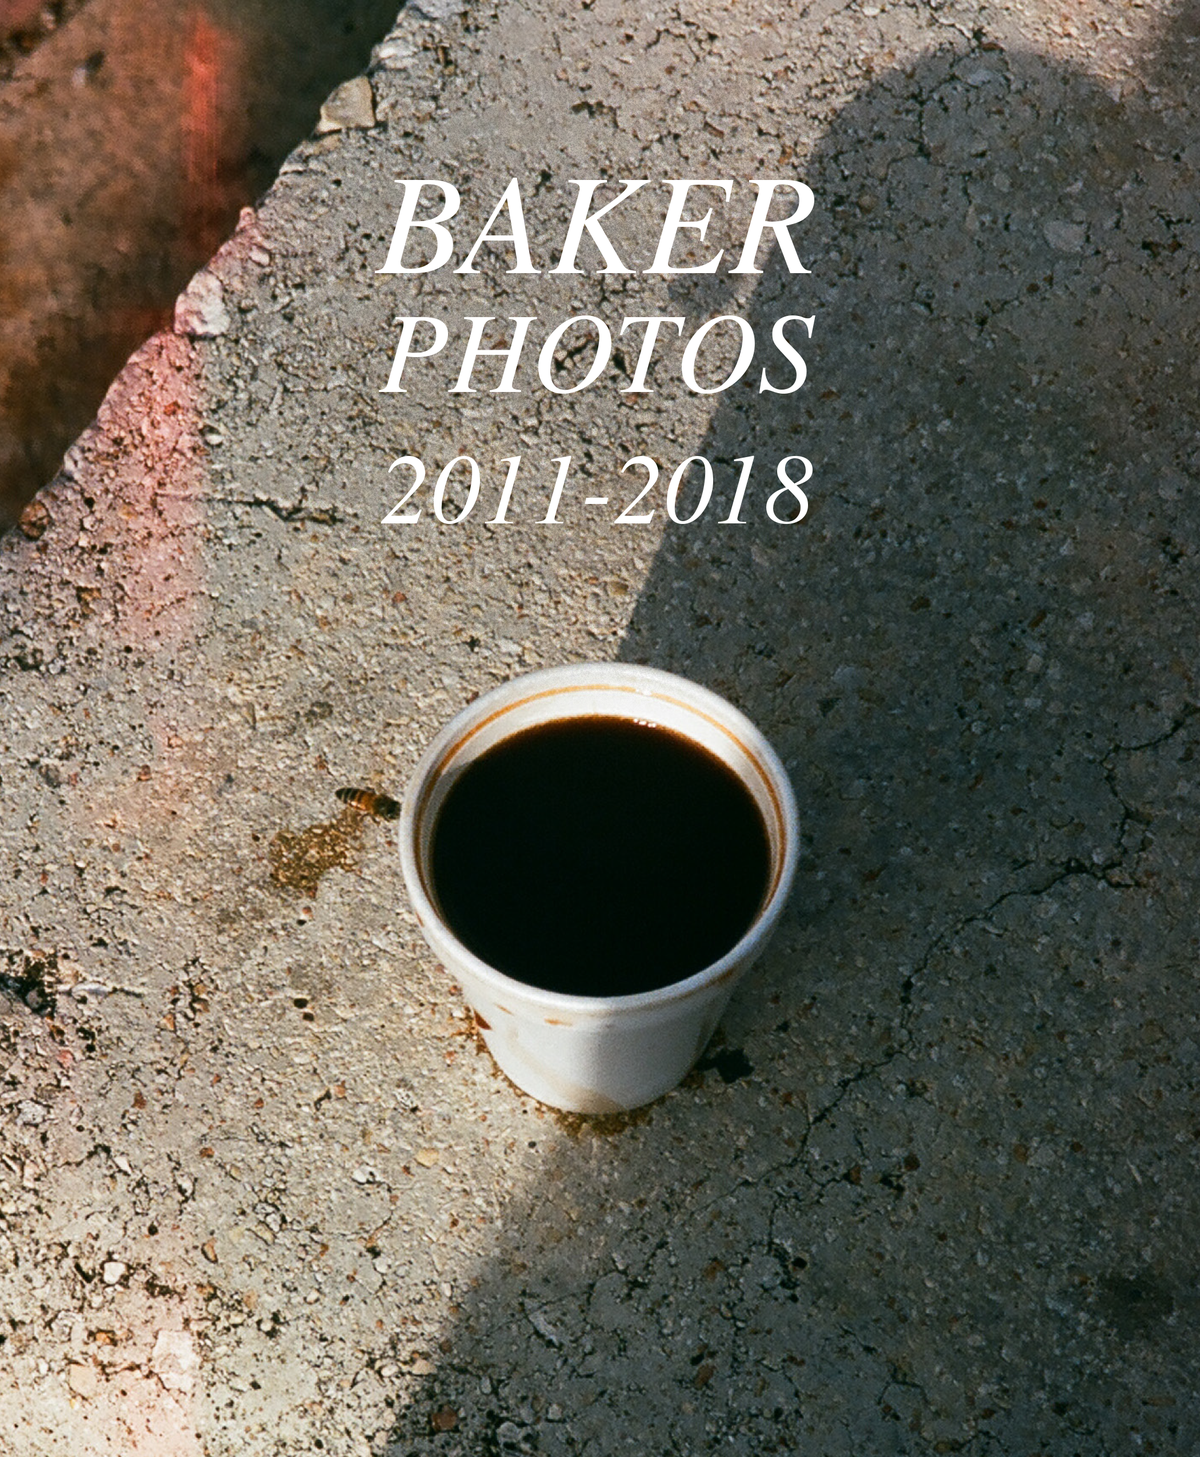 BAKER PHOTOS 2011-2018